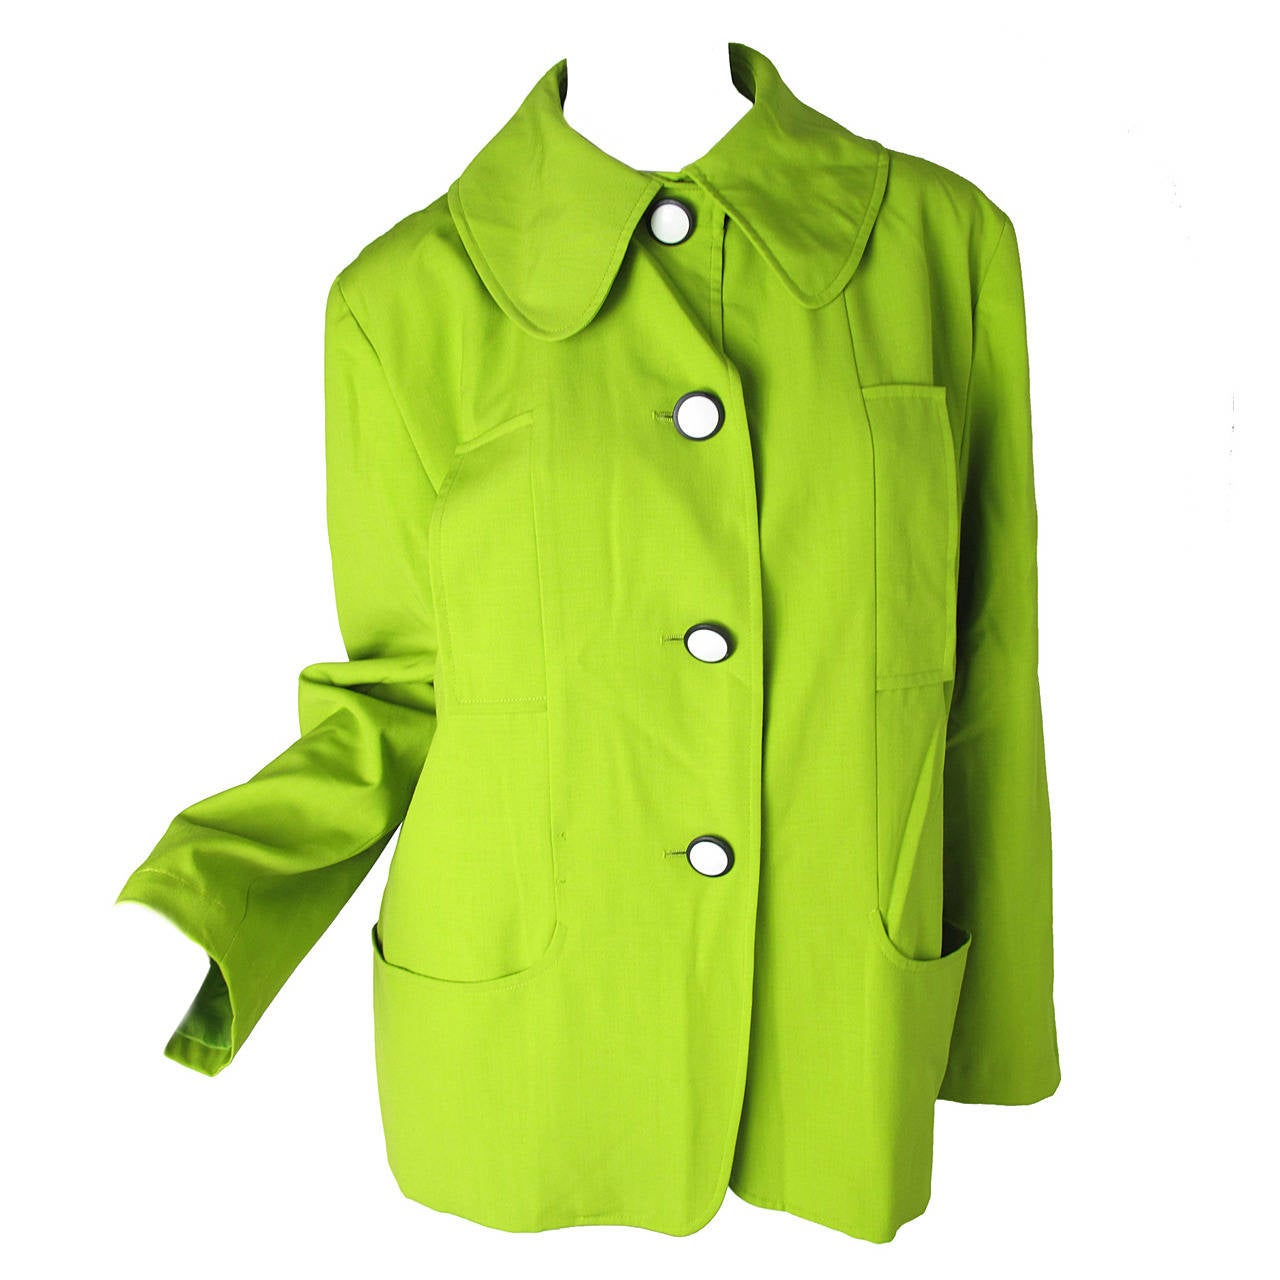 1990s Christian Lacroix Neon Green Jacket For Sale